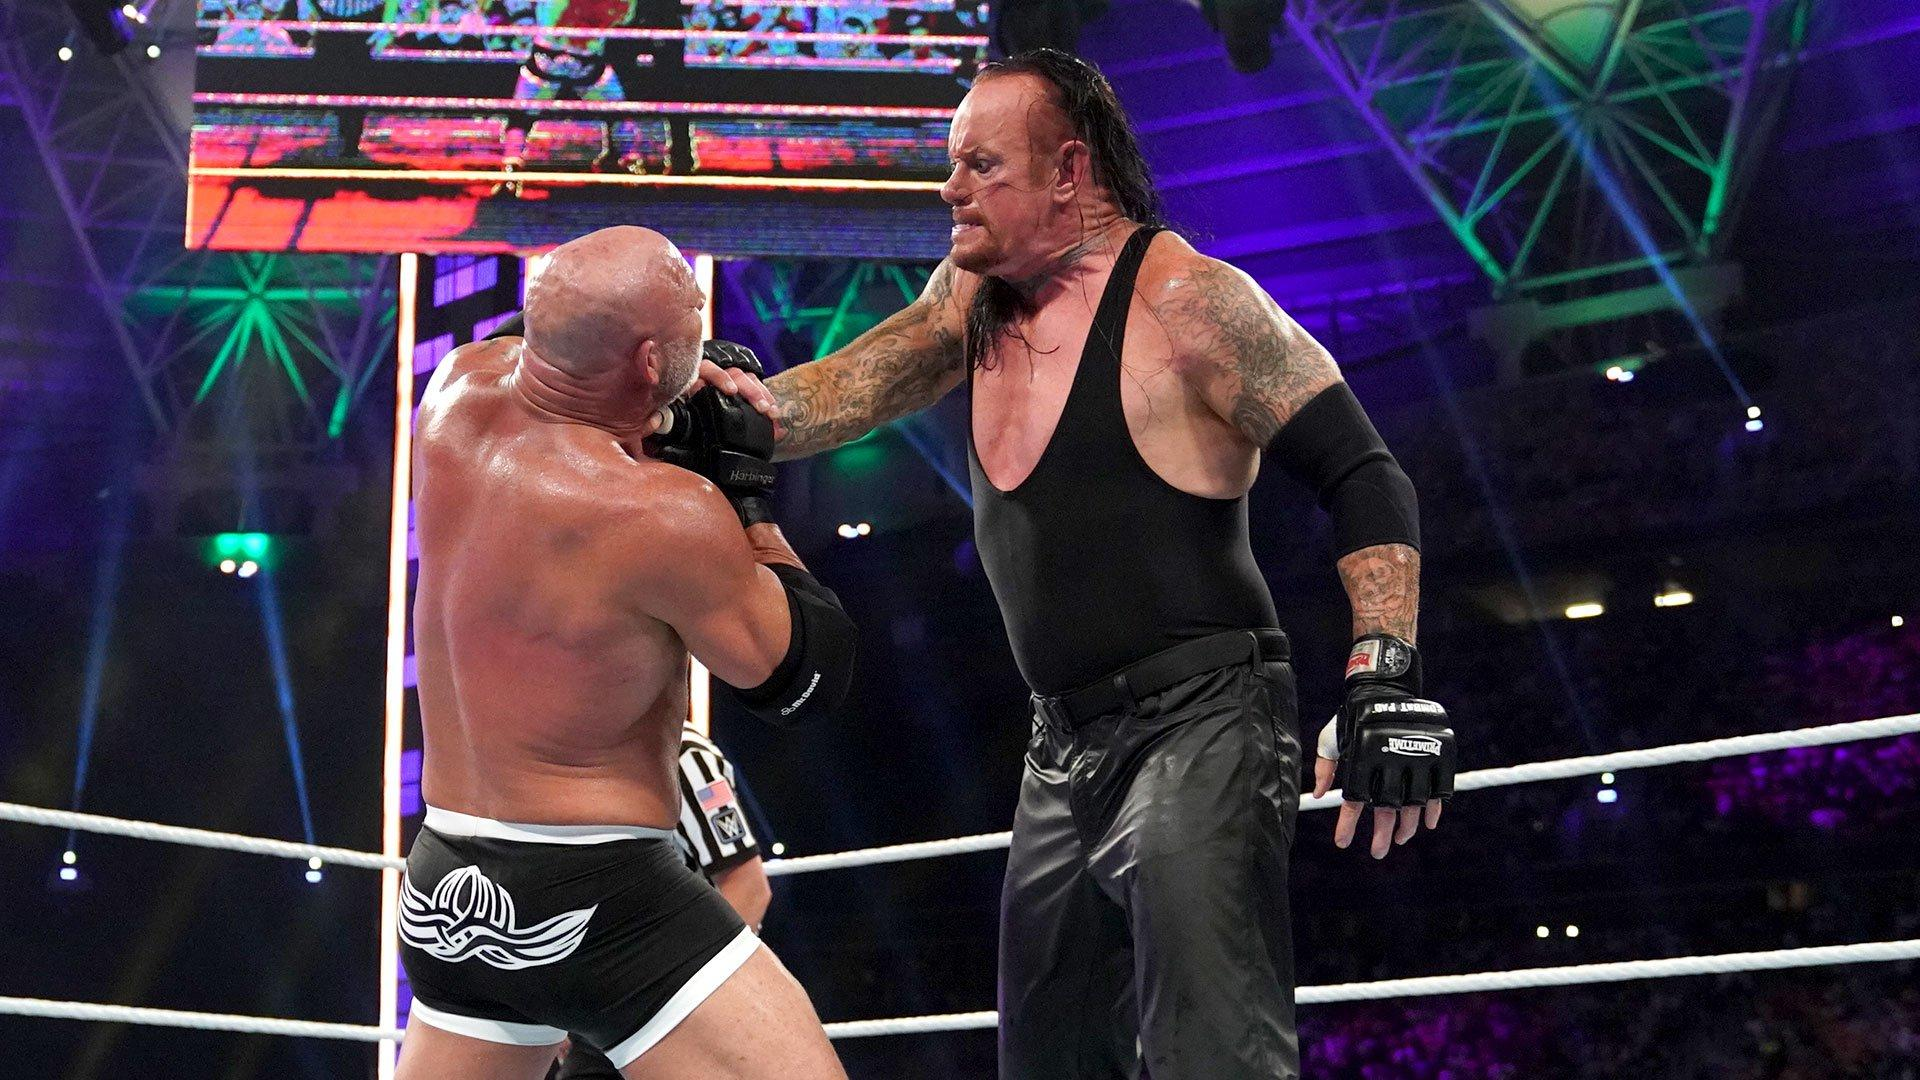 Why Undertaker Kept Wrestling